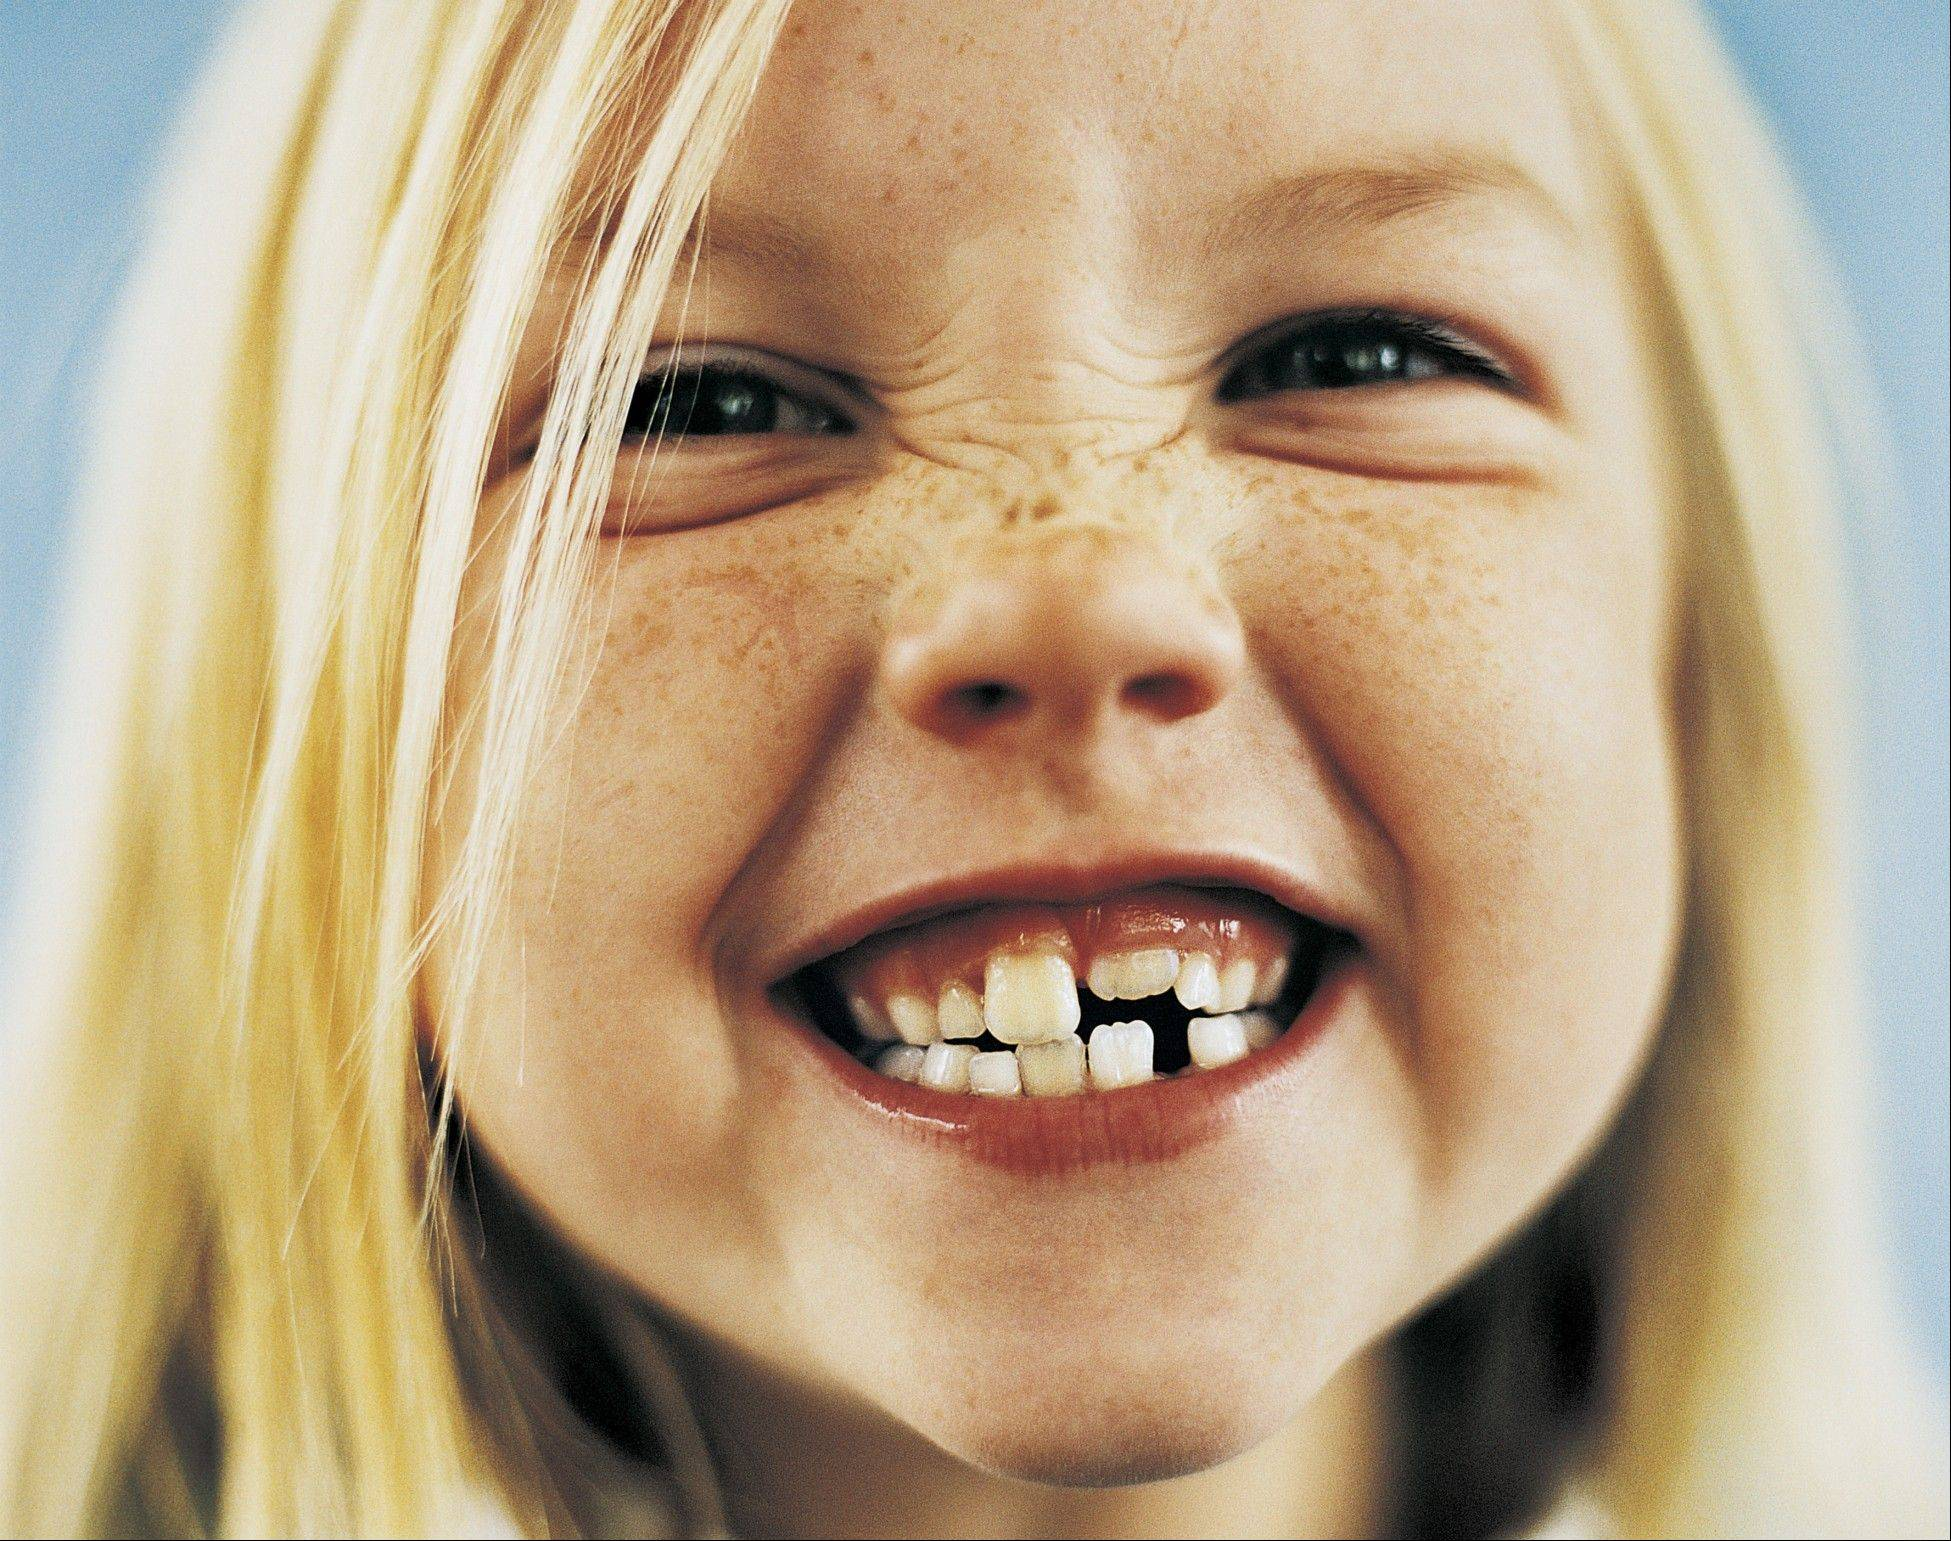 Certain foods can help strengthen teeth, especially in children.